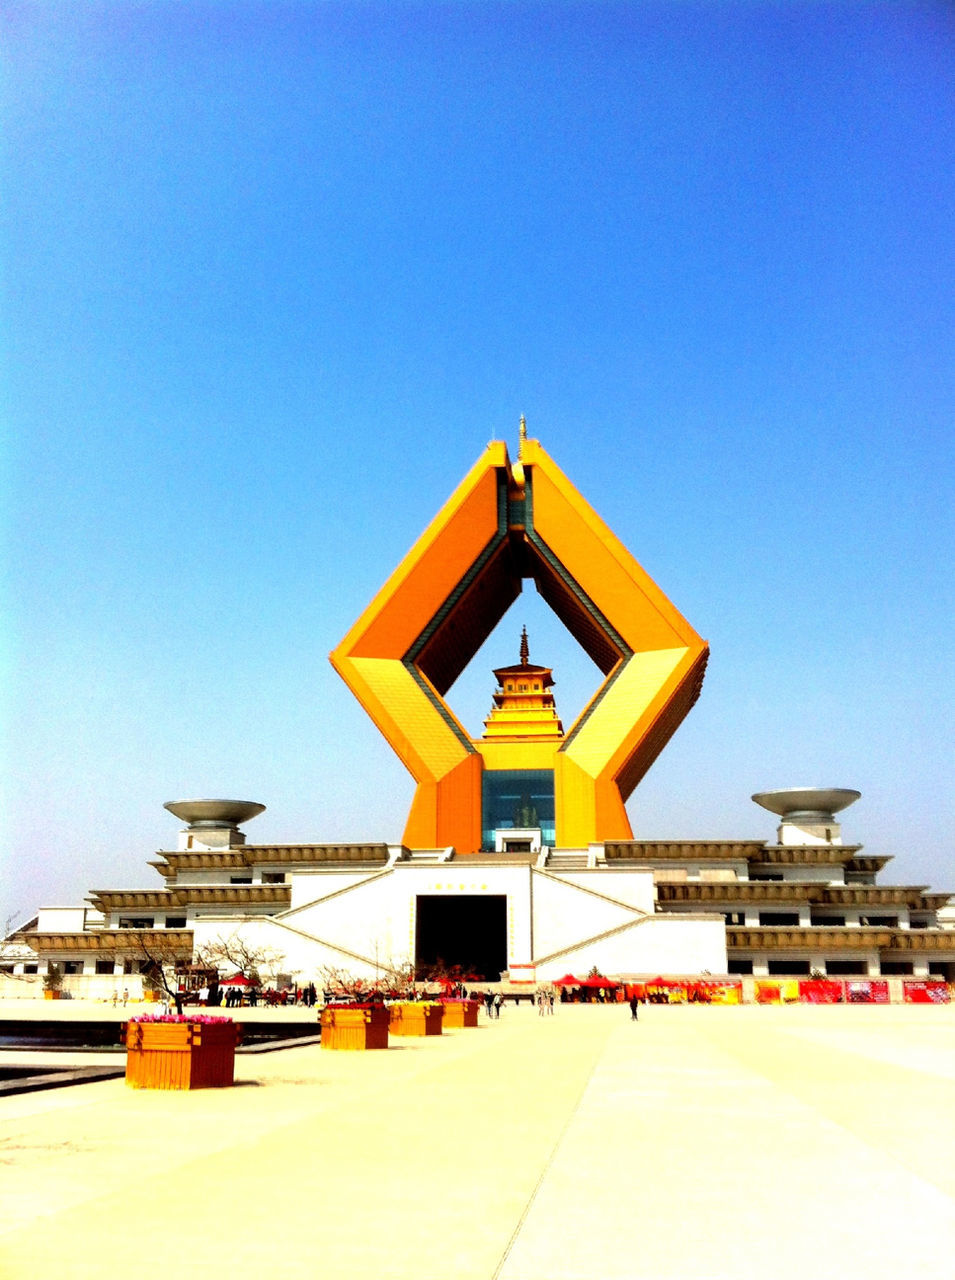 Yellow architectural structure against clear blue sky